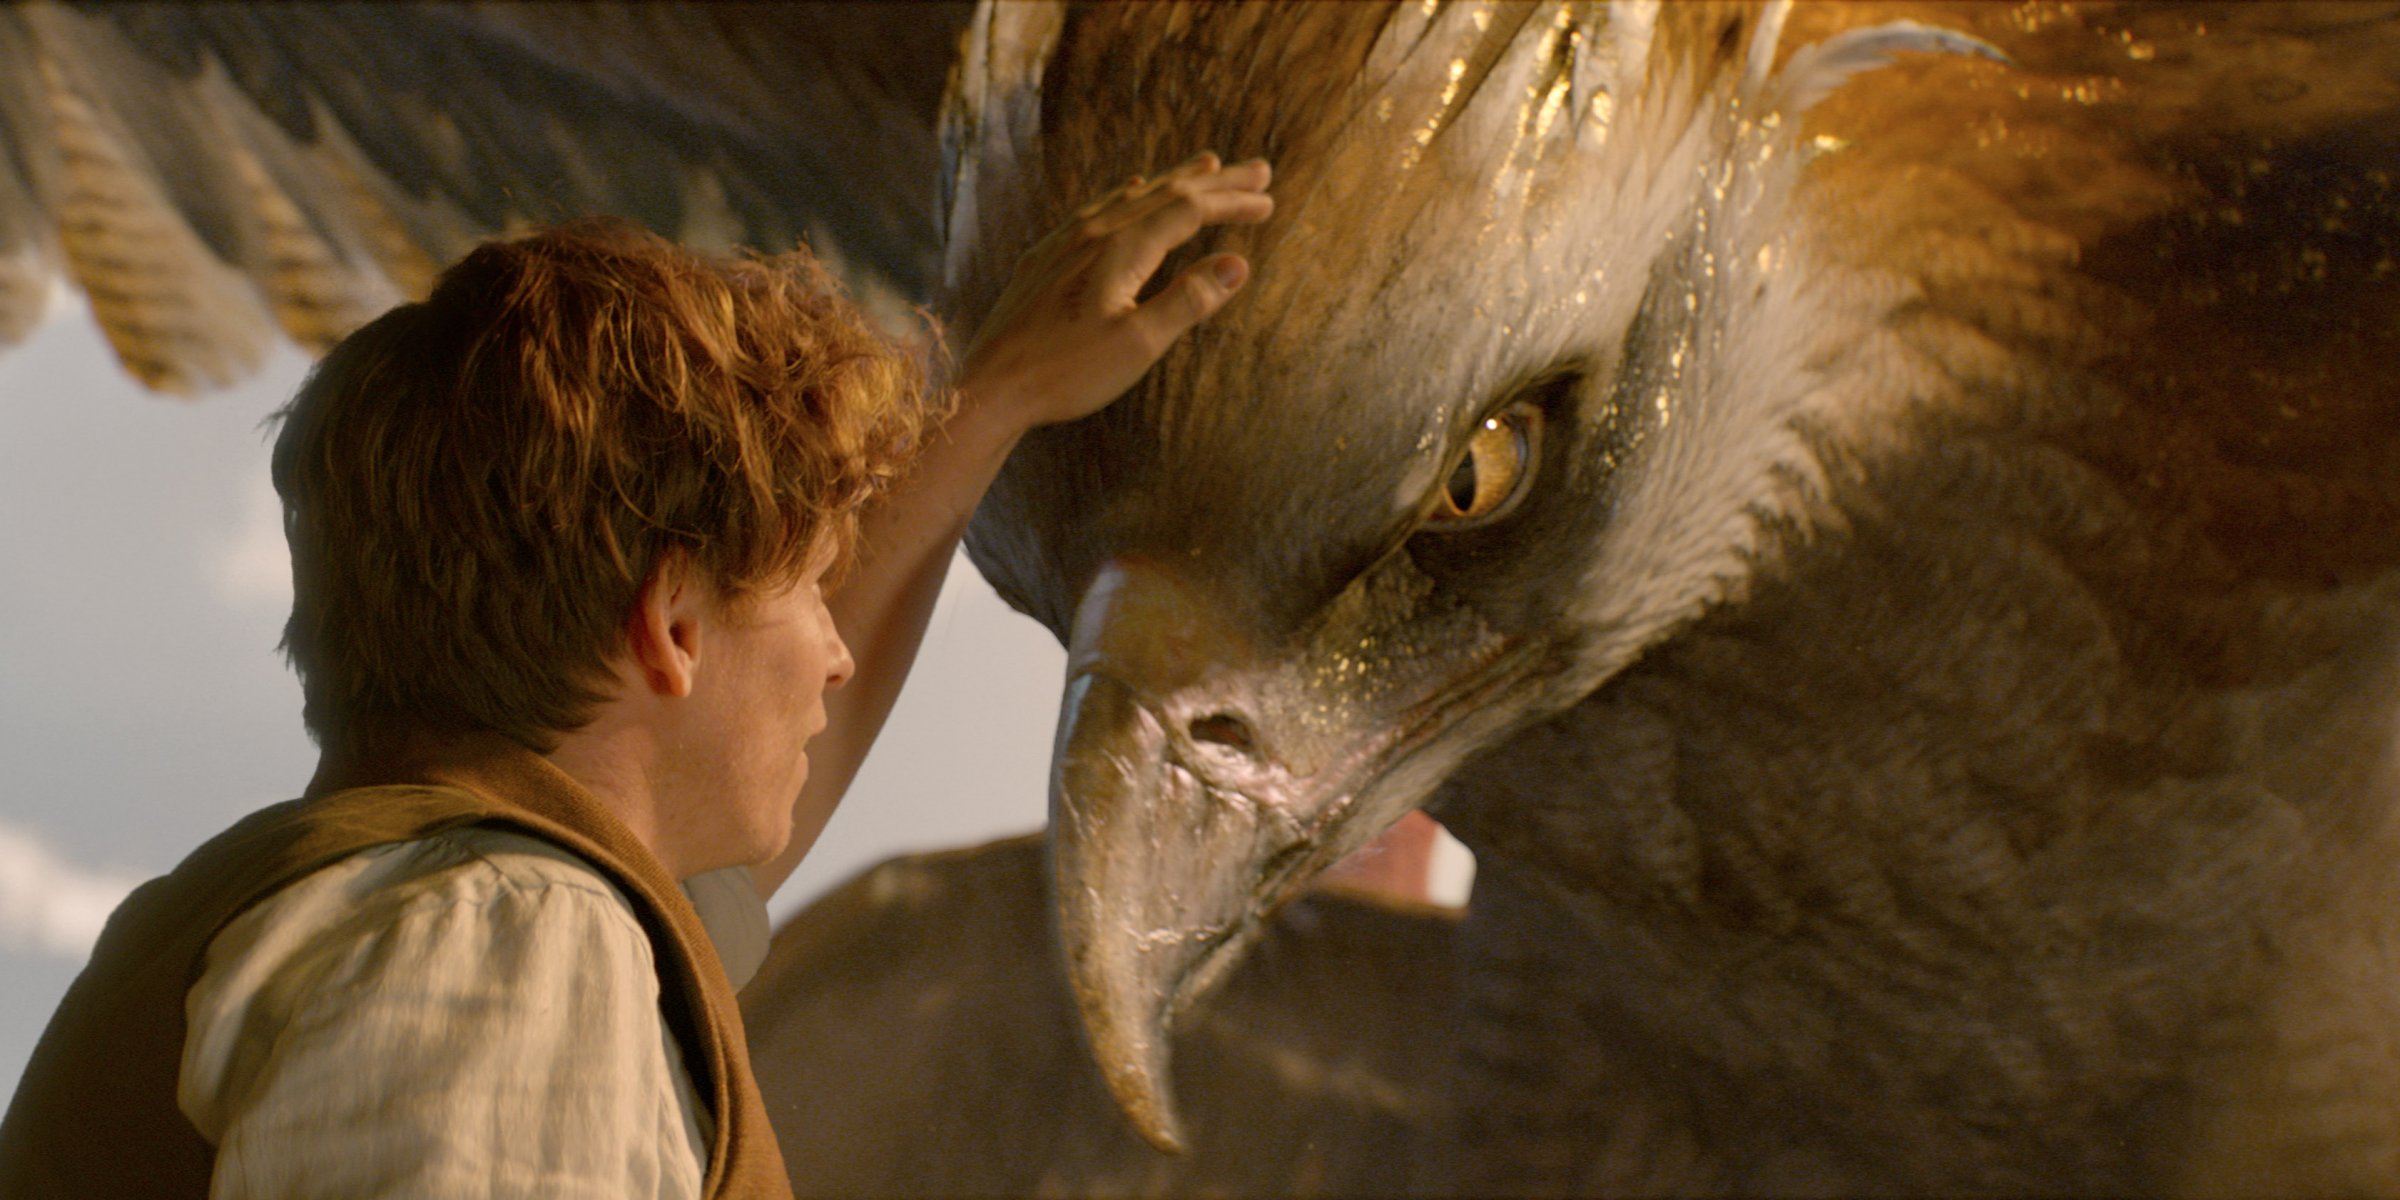 eddie-redmayne-as-newt-scamander-with-a-thunderbird-in-fantastic-beasts